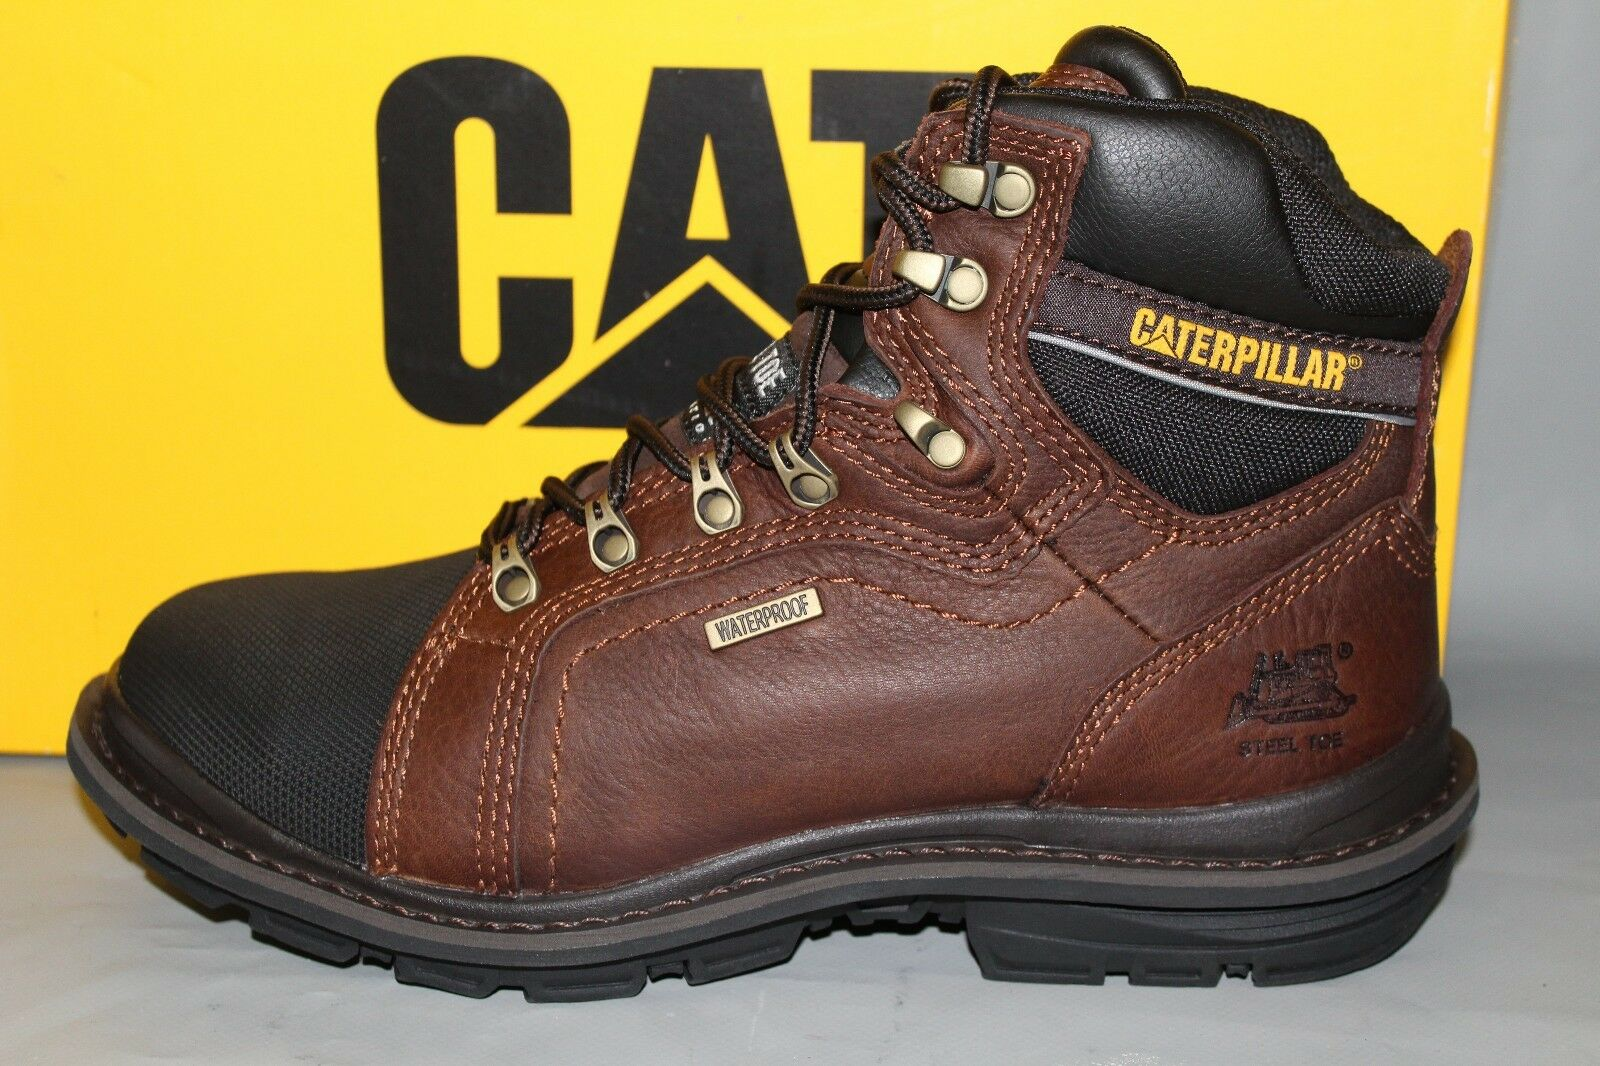 Men's Cats Manifold  P89981, 6  Steel Toe, Insulated Leather Work Boot